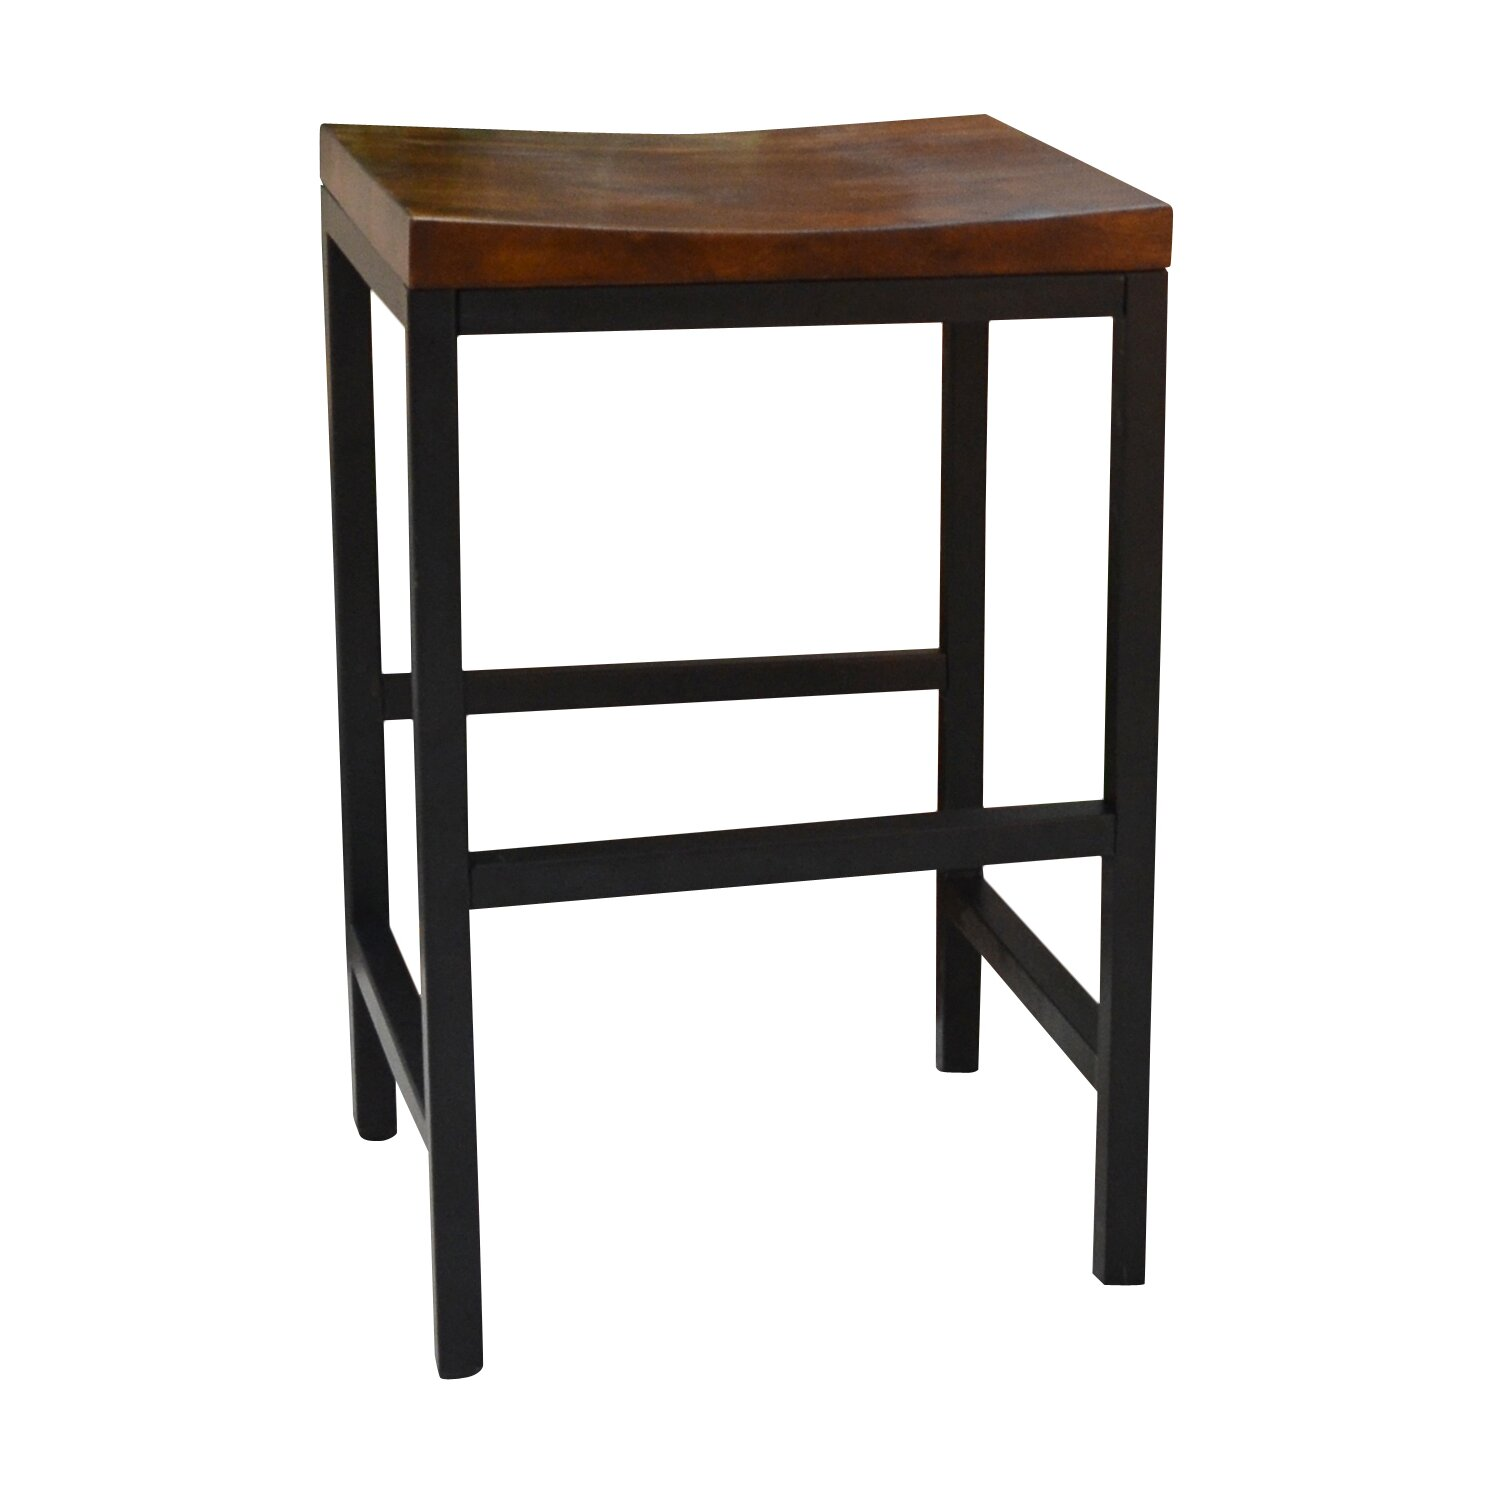 Nightclub Furniture Wholesale Furniture Bar Counter 24 Quot 27, Modern Home Design And Decorating ...